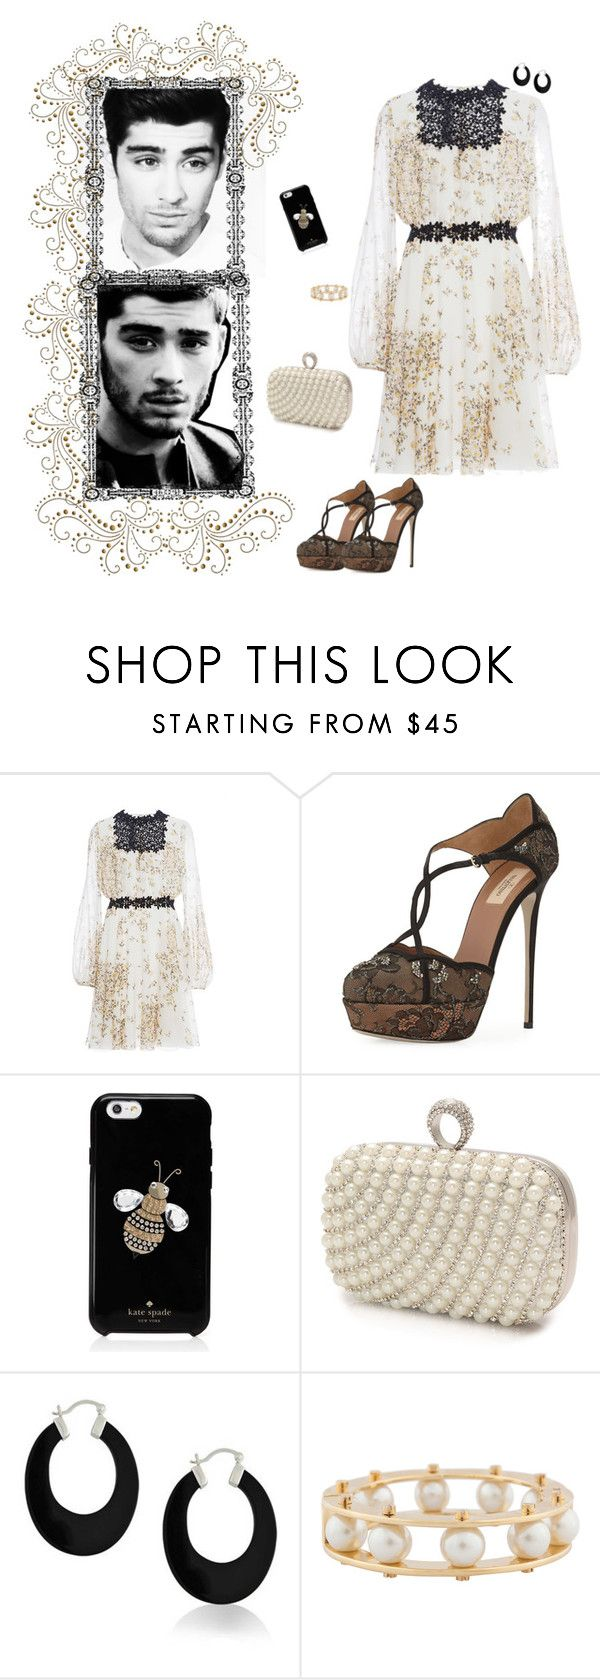 """~ Date Night With Zayn Malik ~"" by stylistic-1 ❤ liked on Polyvore featuring Giambattista Valli, Valentino, Kate Spade, Mascara, Bling Jewelry and Lele Sadoughi"